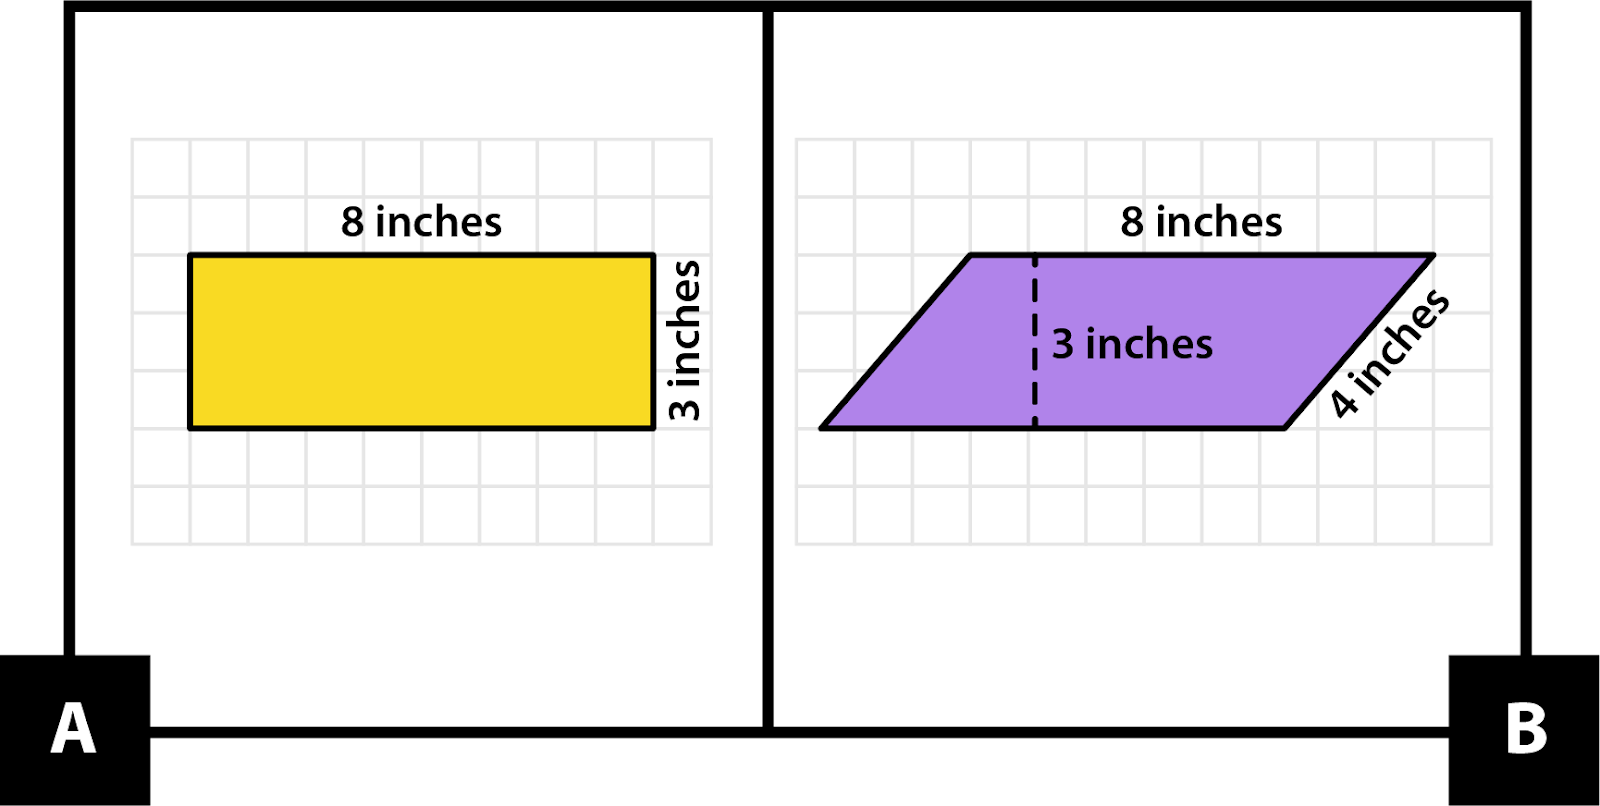 A: a rectangle that is 8 inches wide and 3 inches tall. B: a quadrilateral that has a top and bottom of 8 inches, sides of 4 inches and is 3 inches vertically between the top and bottom.